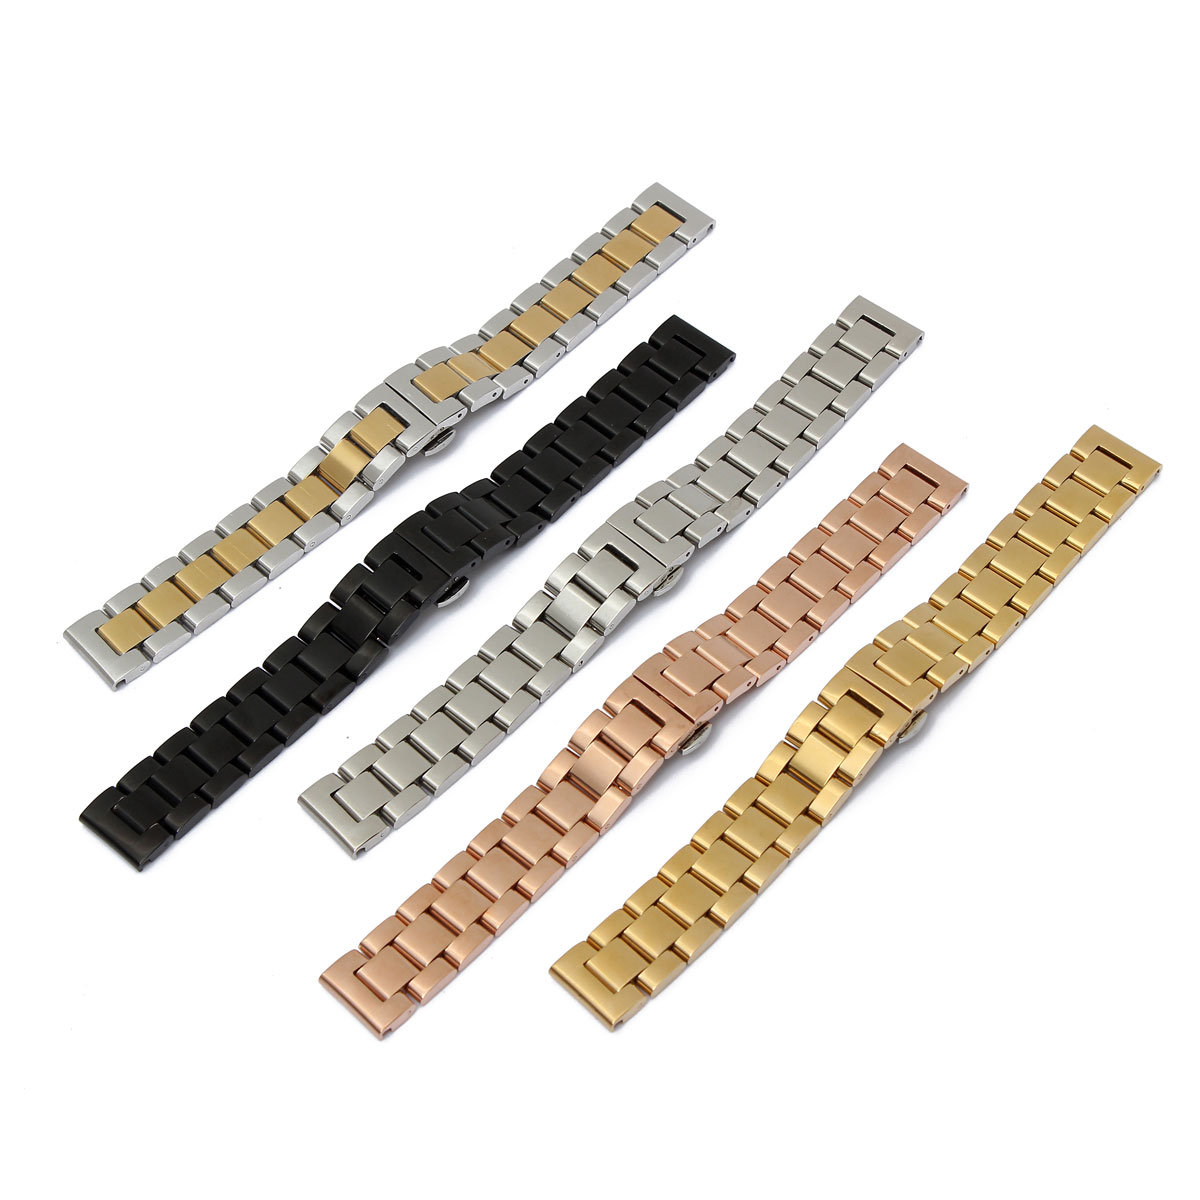 18mm Watchband Mens Women High Quality Stainless Steel Strap Silver Gold  Black Rosegold Watch Bracelet Strap